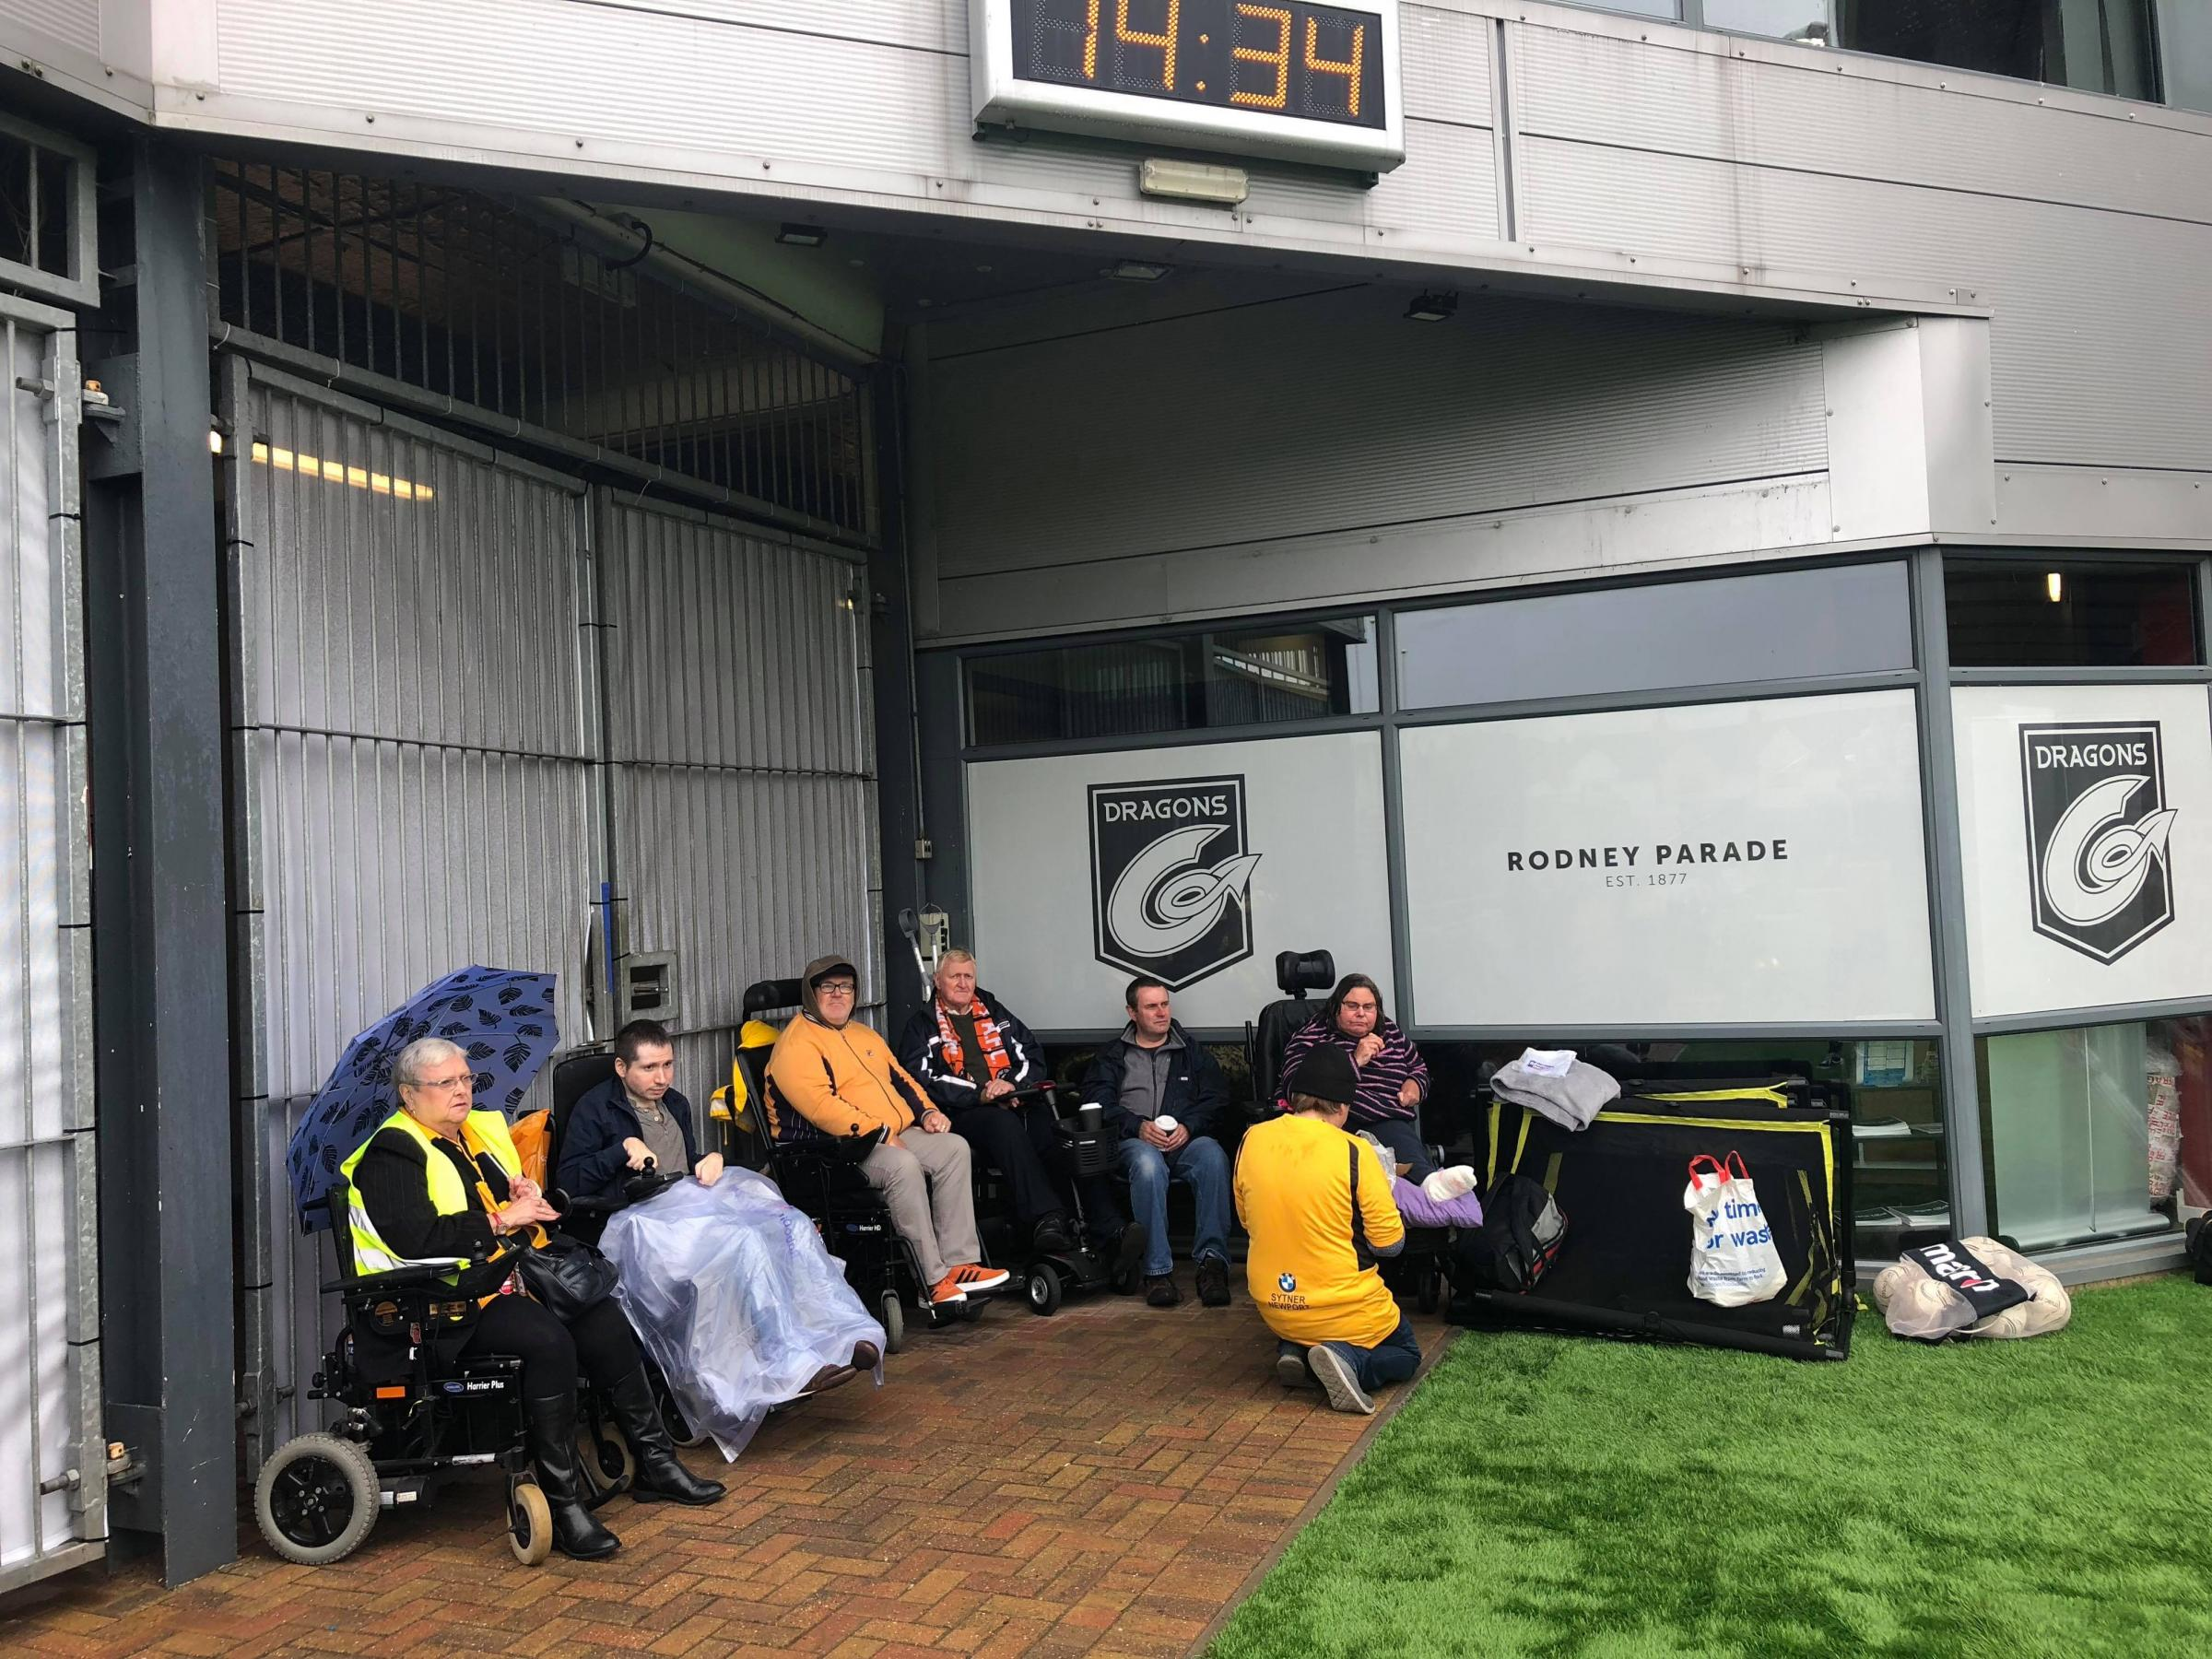 SOGGY: Newport County fans in wheelchairs were not able to access the disabled area on Saturday